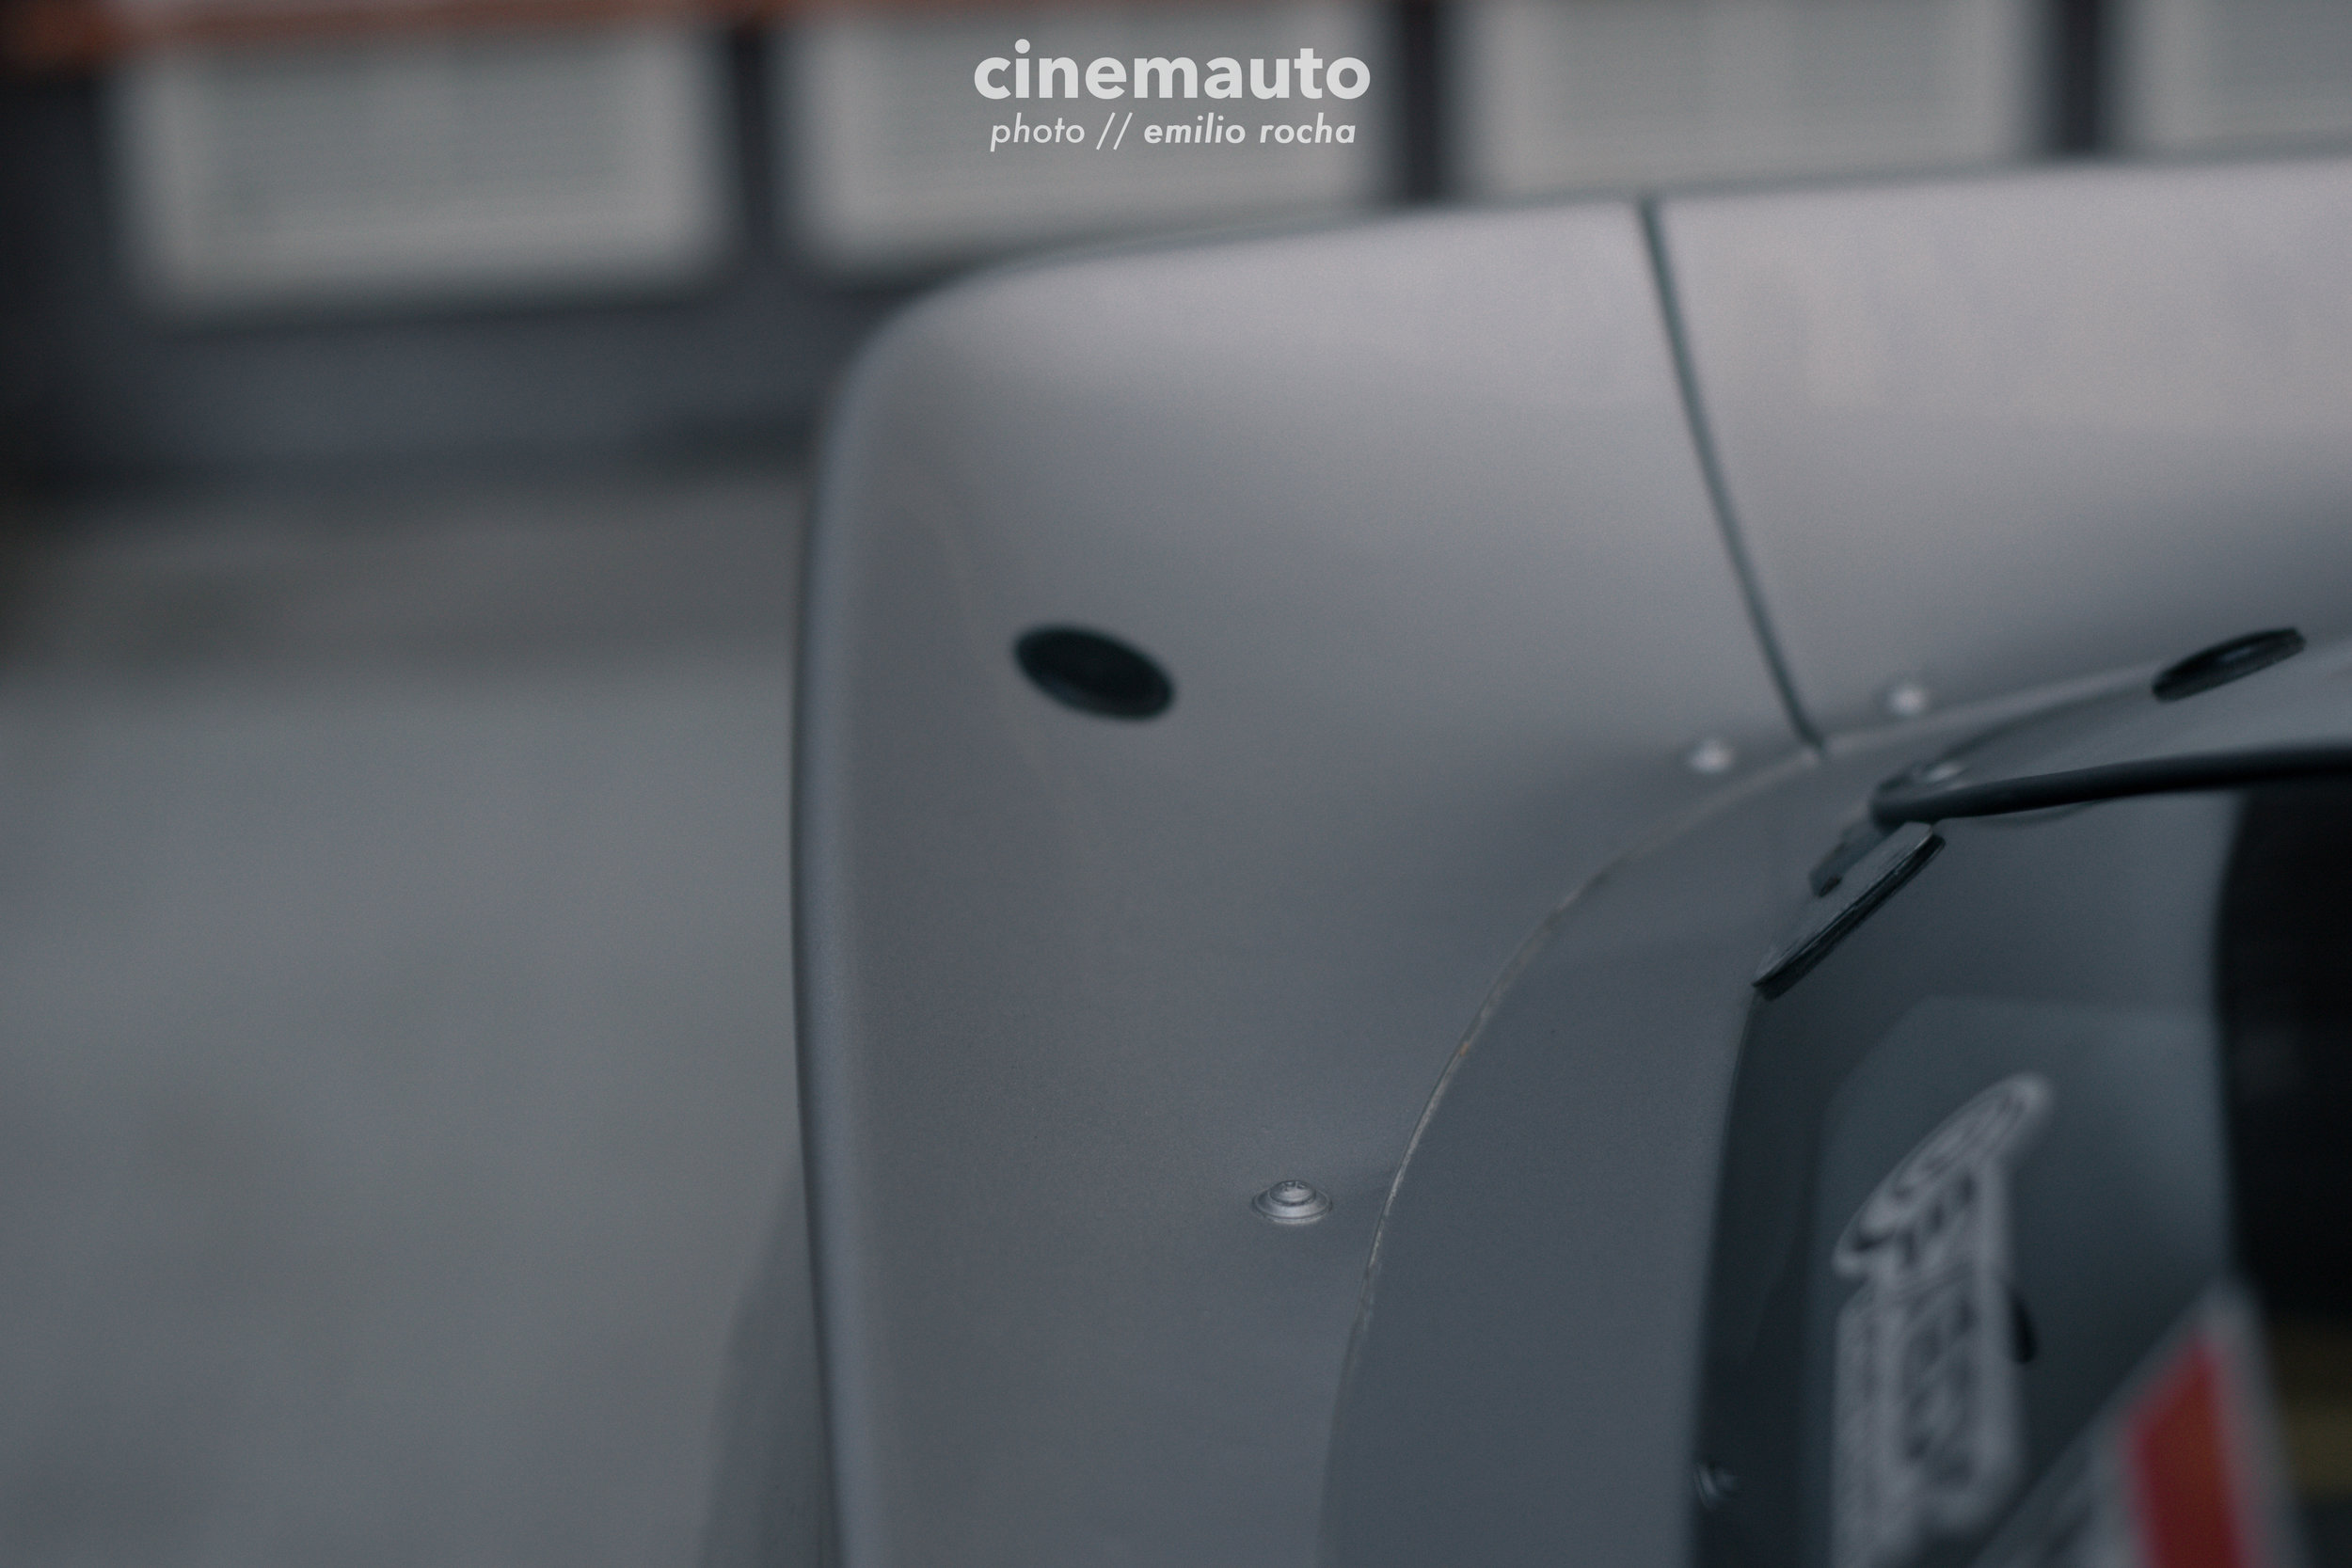 Cinemauto-RX7-20.jpg